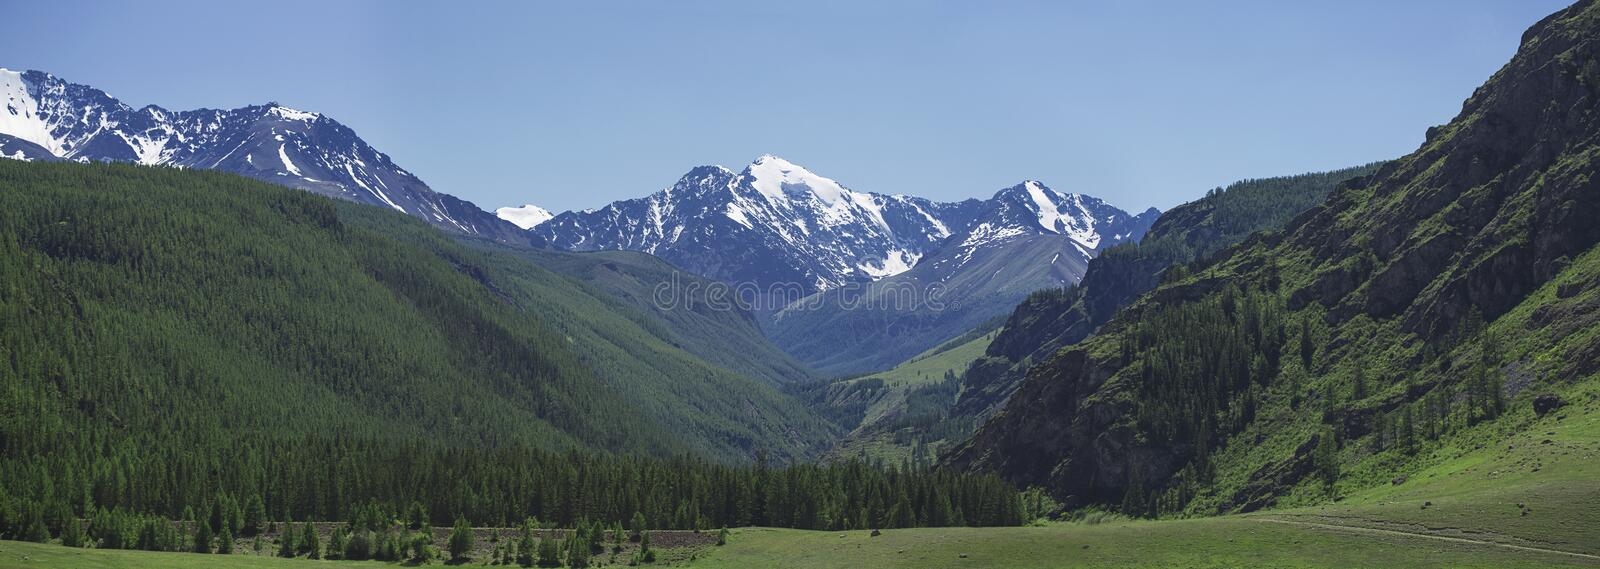 large valley in the mountains stock photos